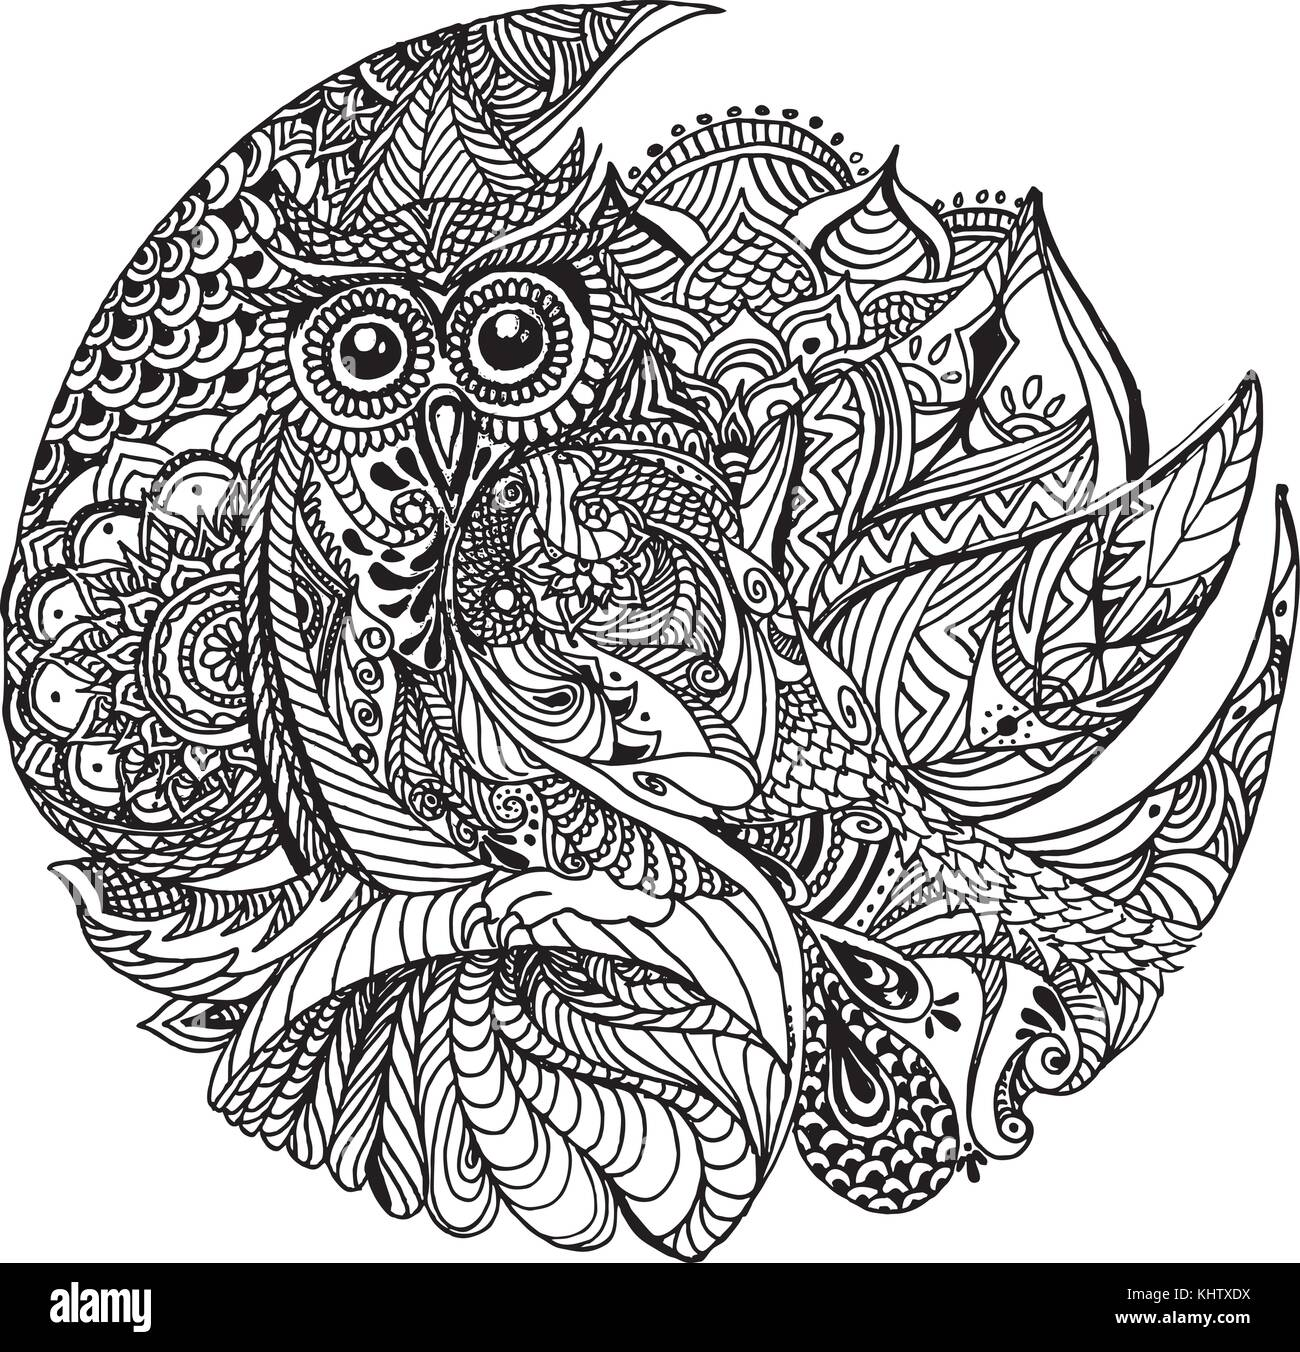 Floral Owl Design Owl Tattoo Coloring Book Page Stock Vector Art